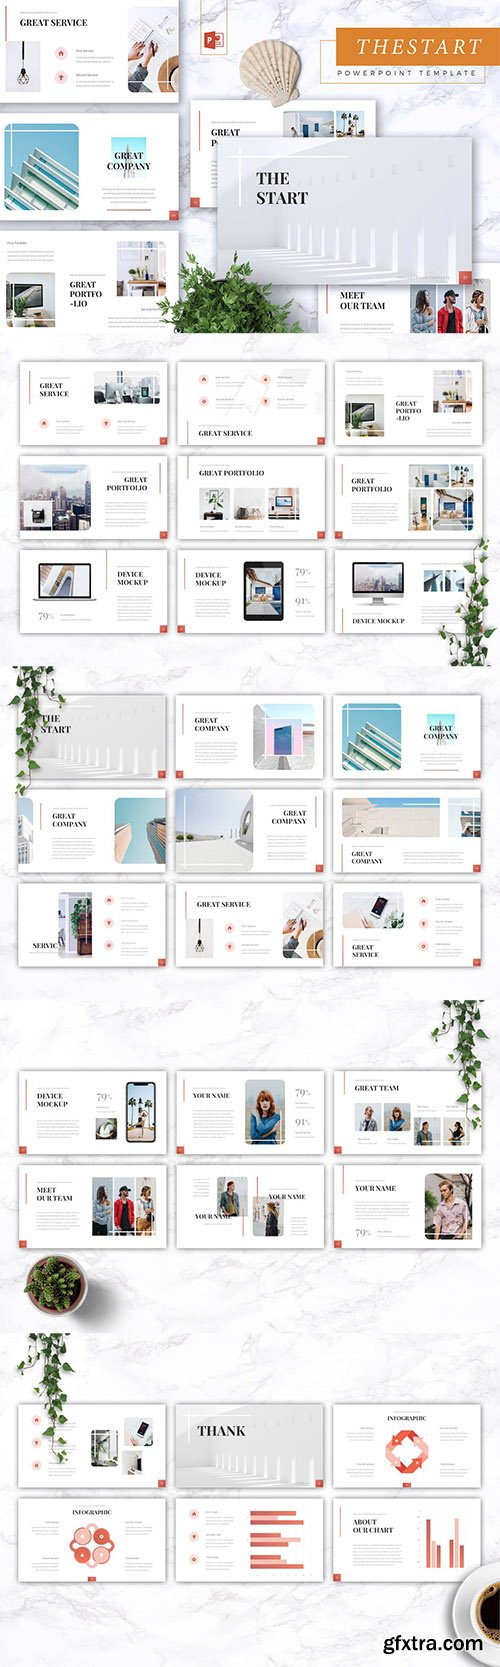 THE START - Company Profile Powerpoint, Keynote and Google Slides Templates